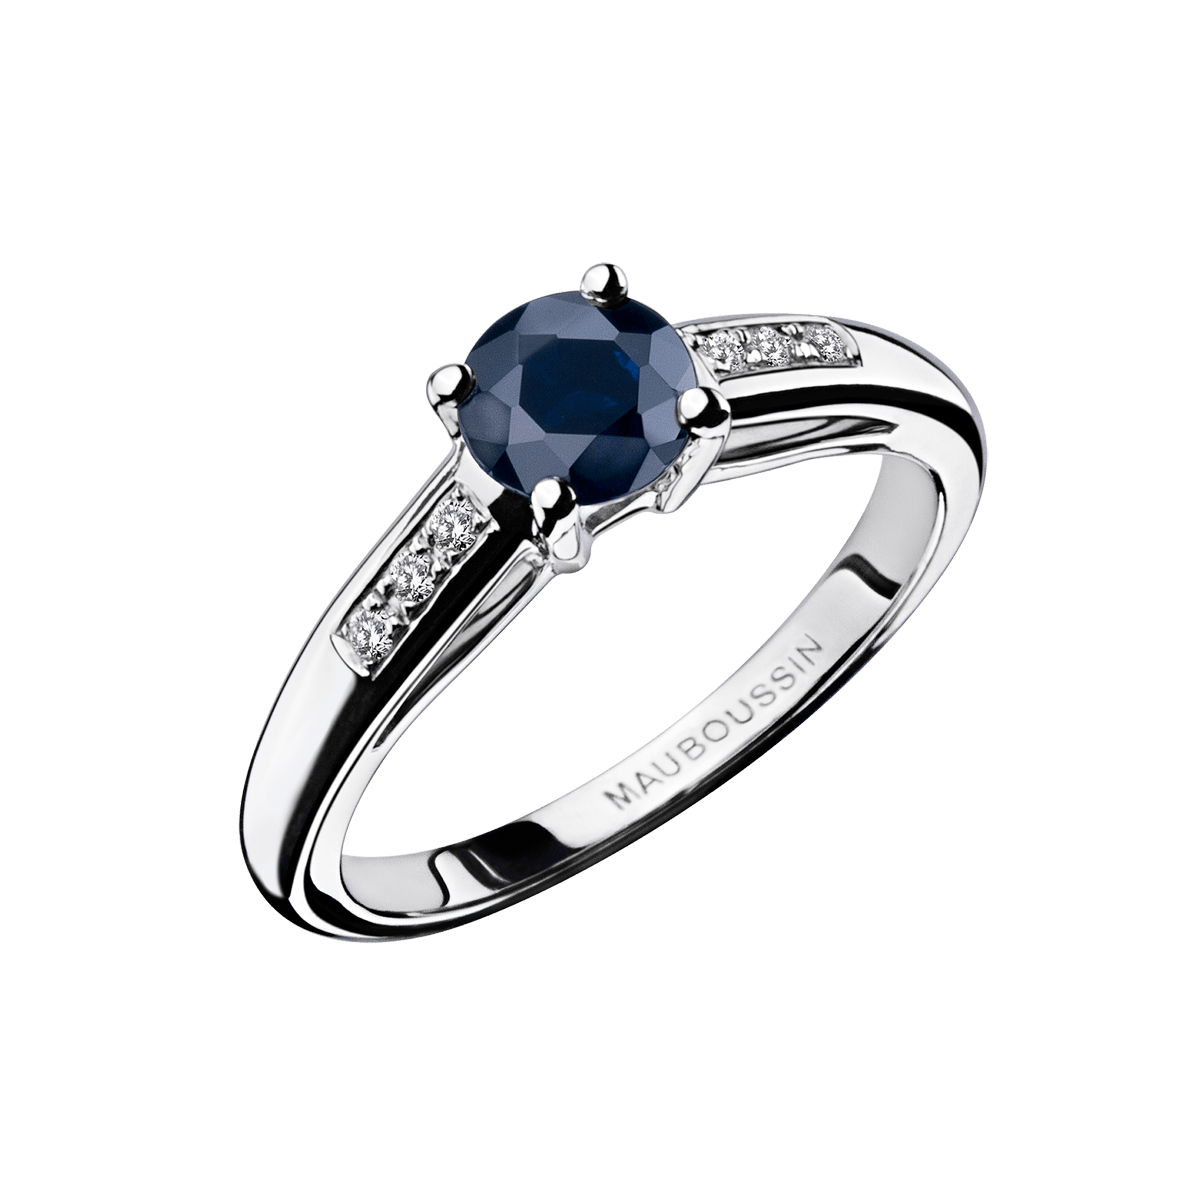 Top Un Grand Mot d'Amour ring by Mauboussin MA46